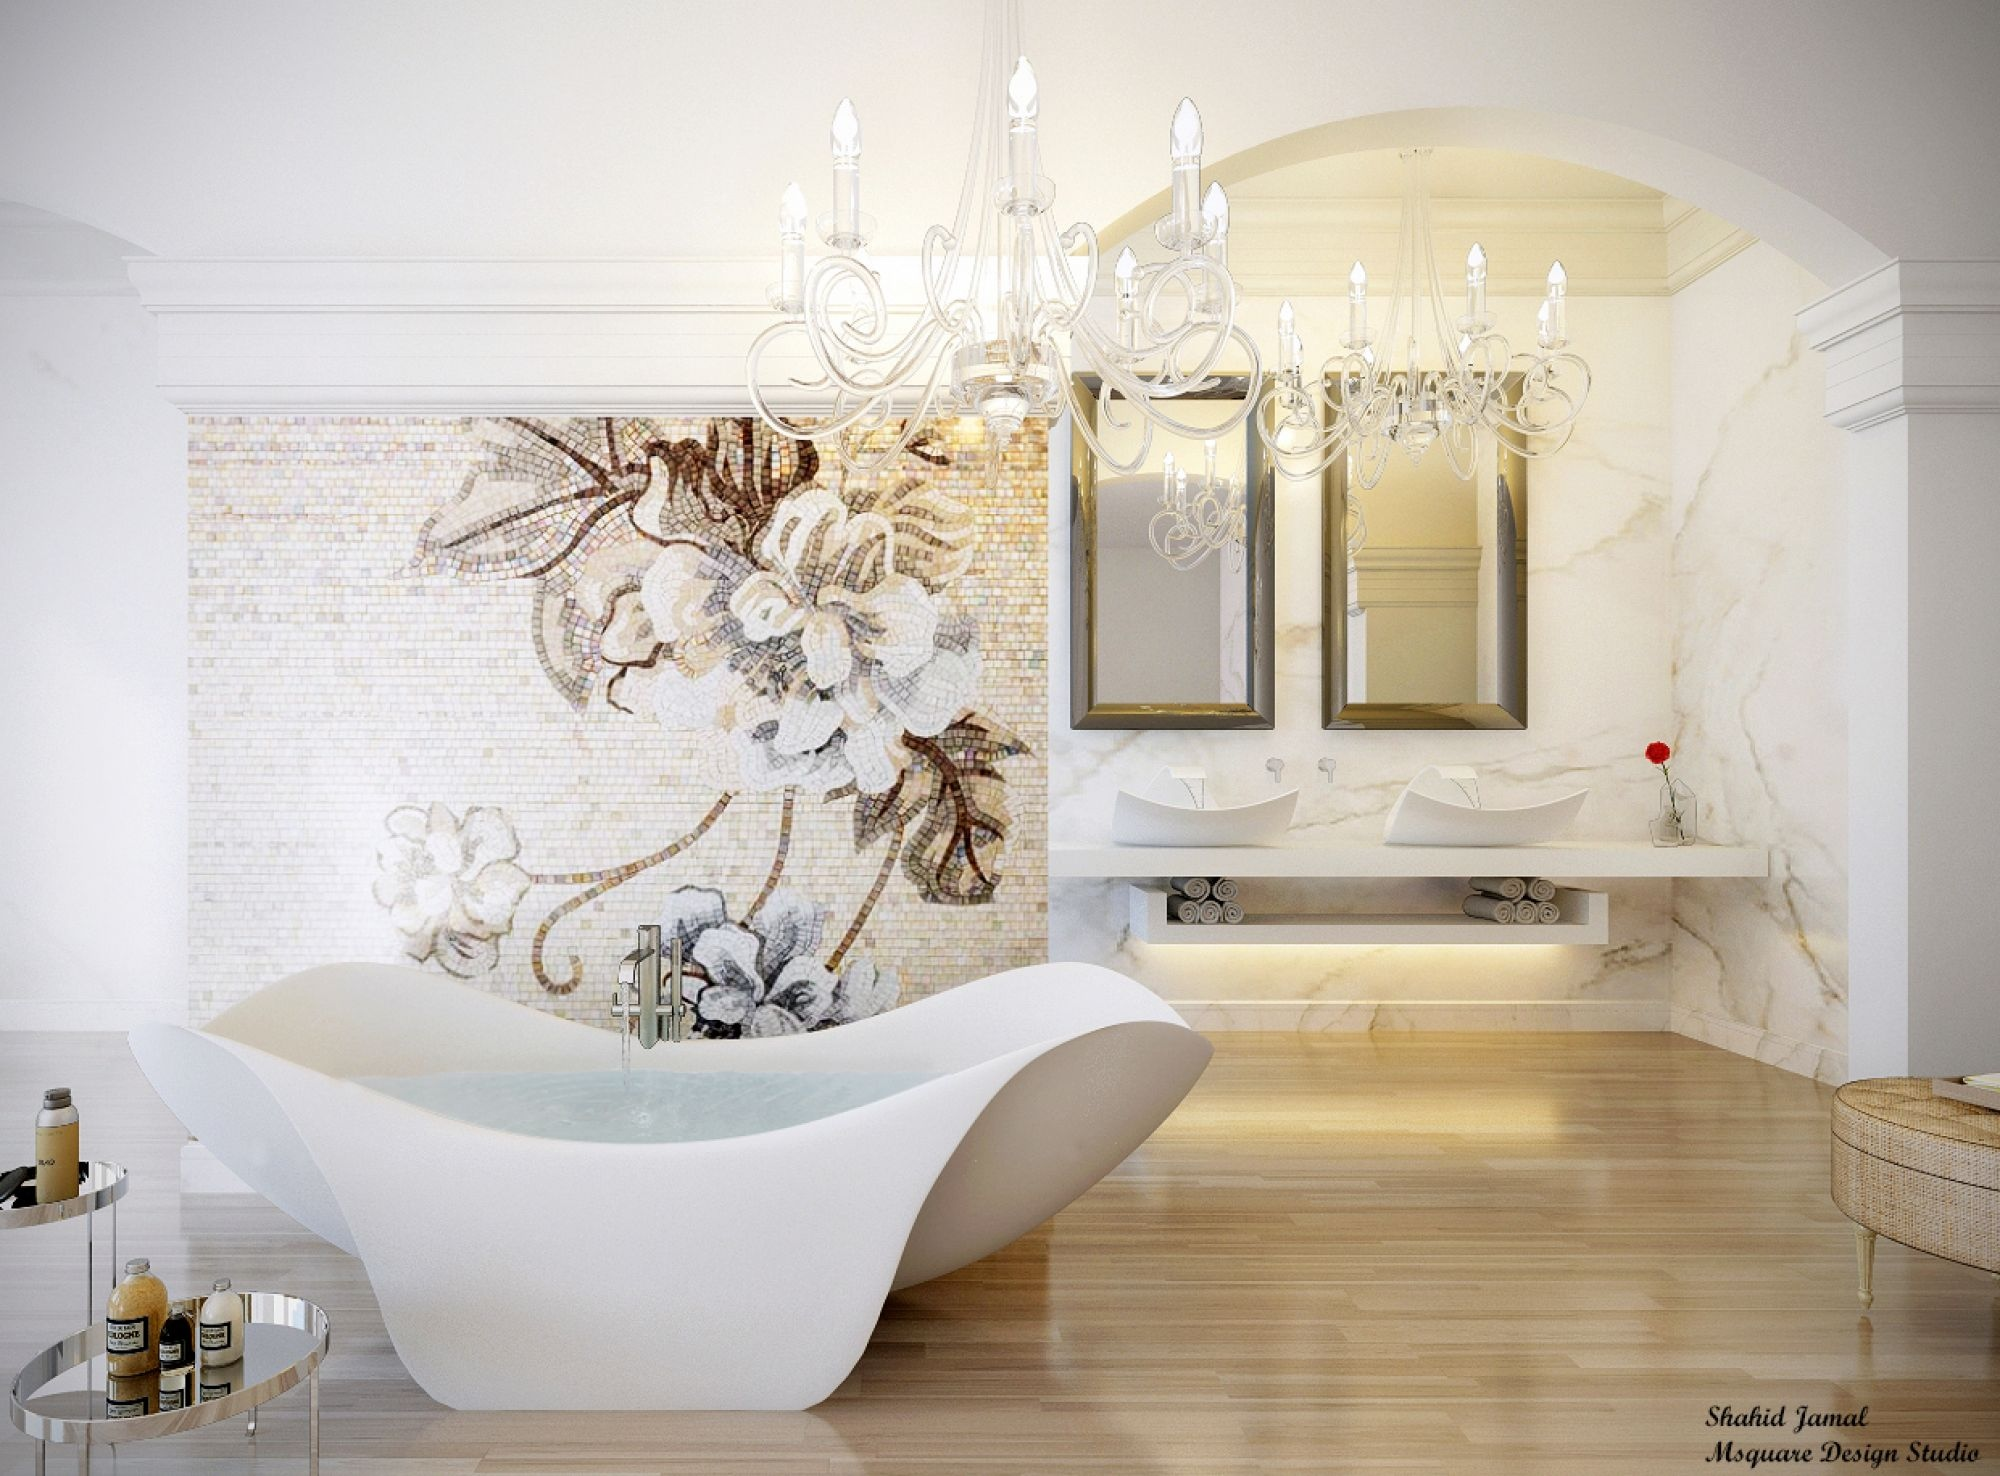 Bathroom Accessories Design - Home & Furniture Design ...